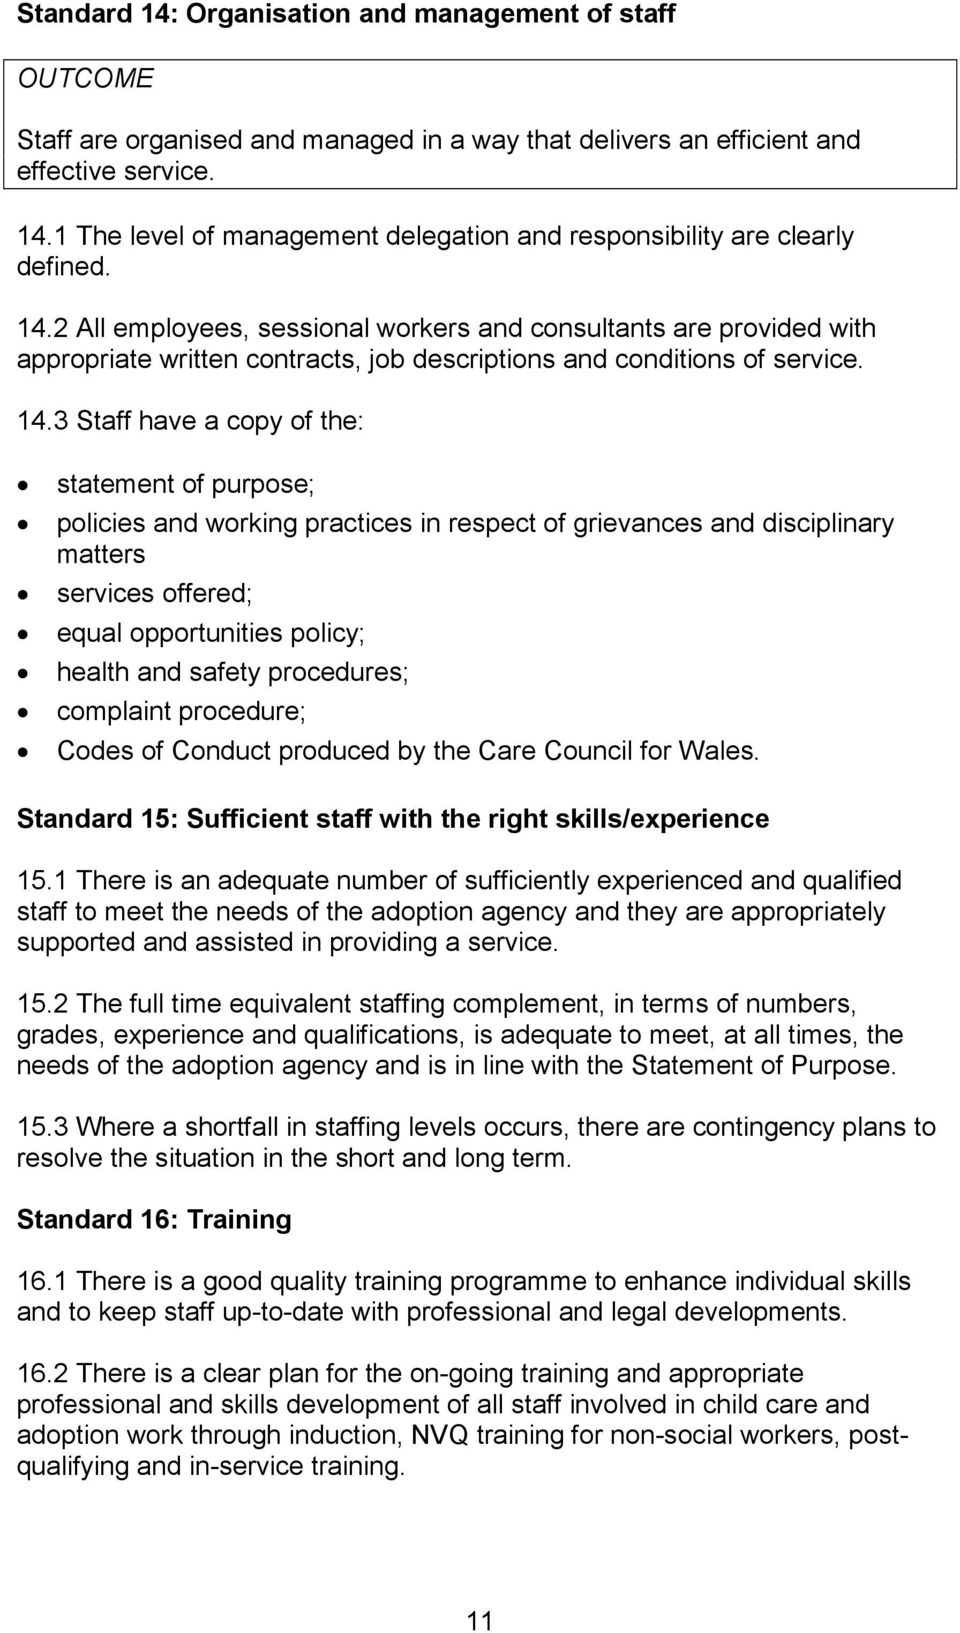 3 Staff have a copy of the: statement of purpose; policies and working practices in respect of grievances and disciplinary matters services offered; equal opportunities policy; health and safety